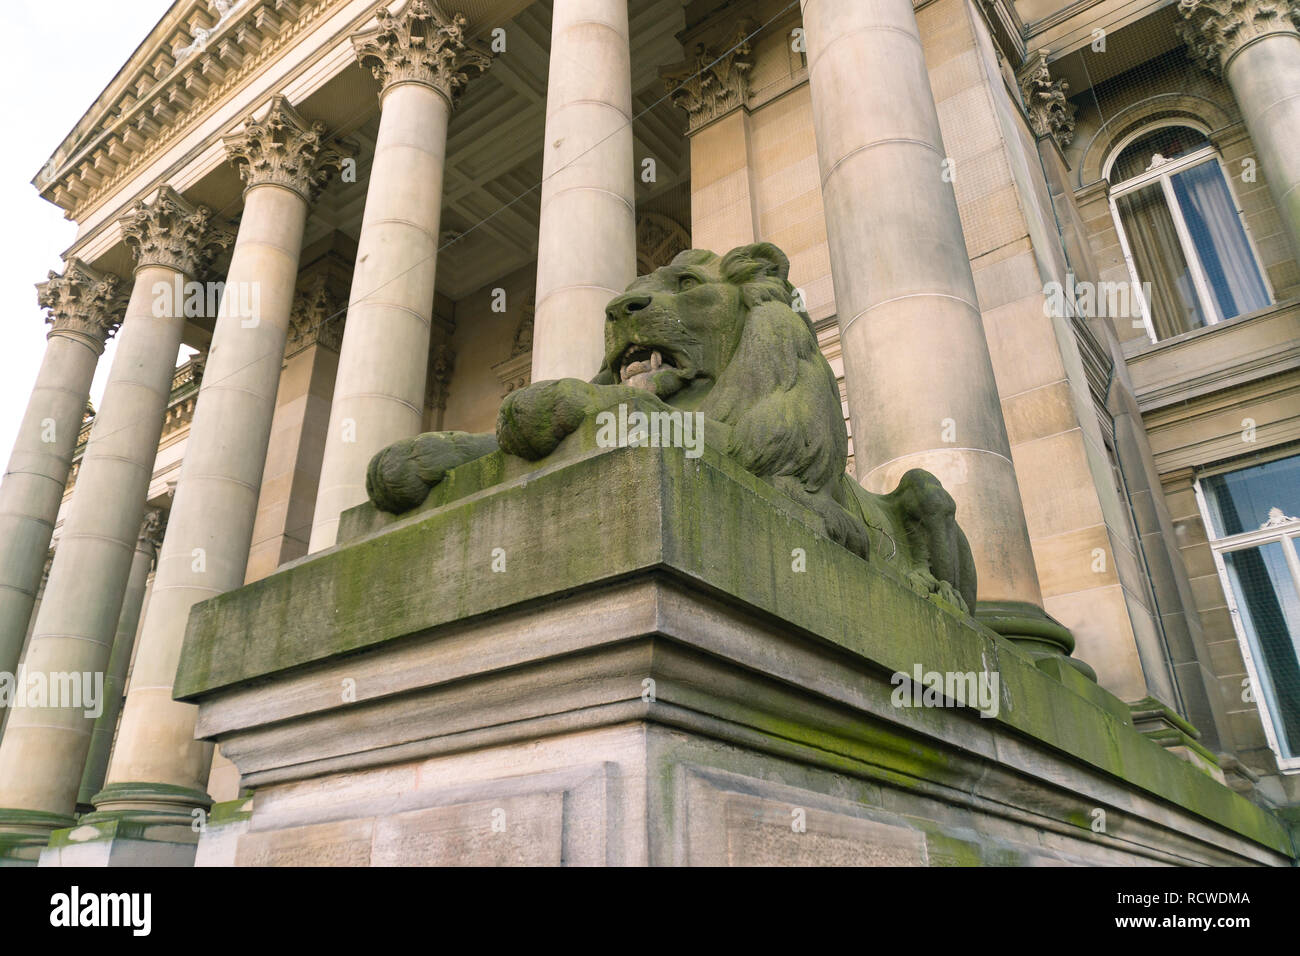 The lion statue in front of the Bolton Town Hall in England. - Stock Image